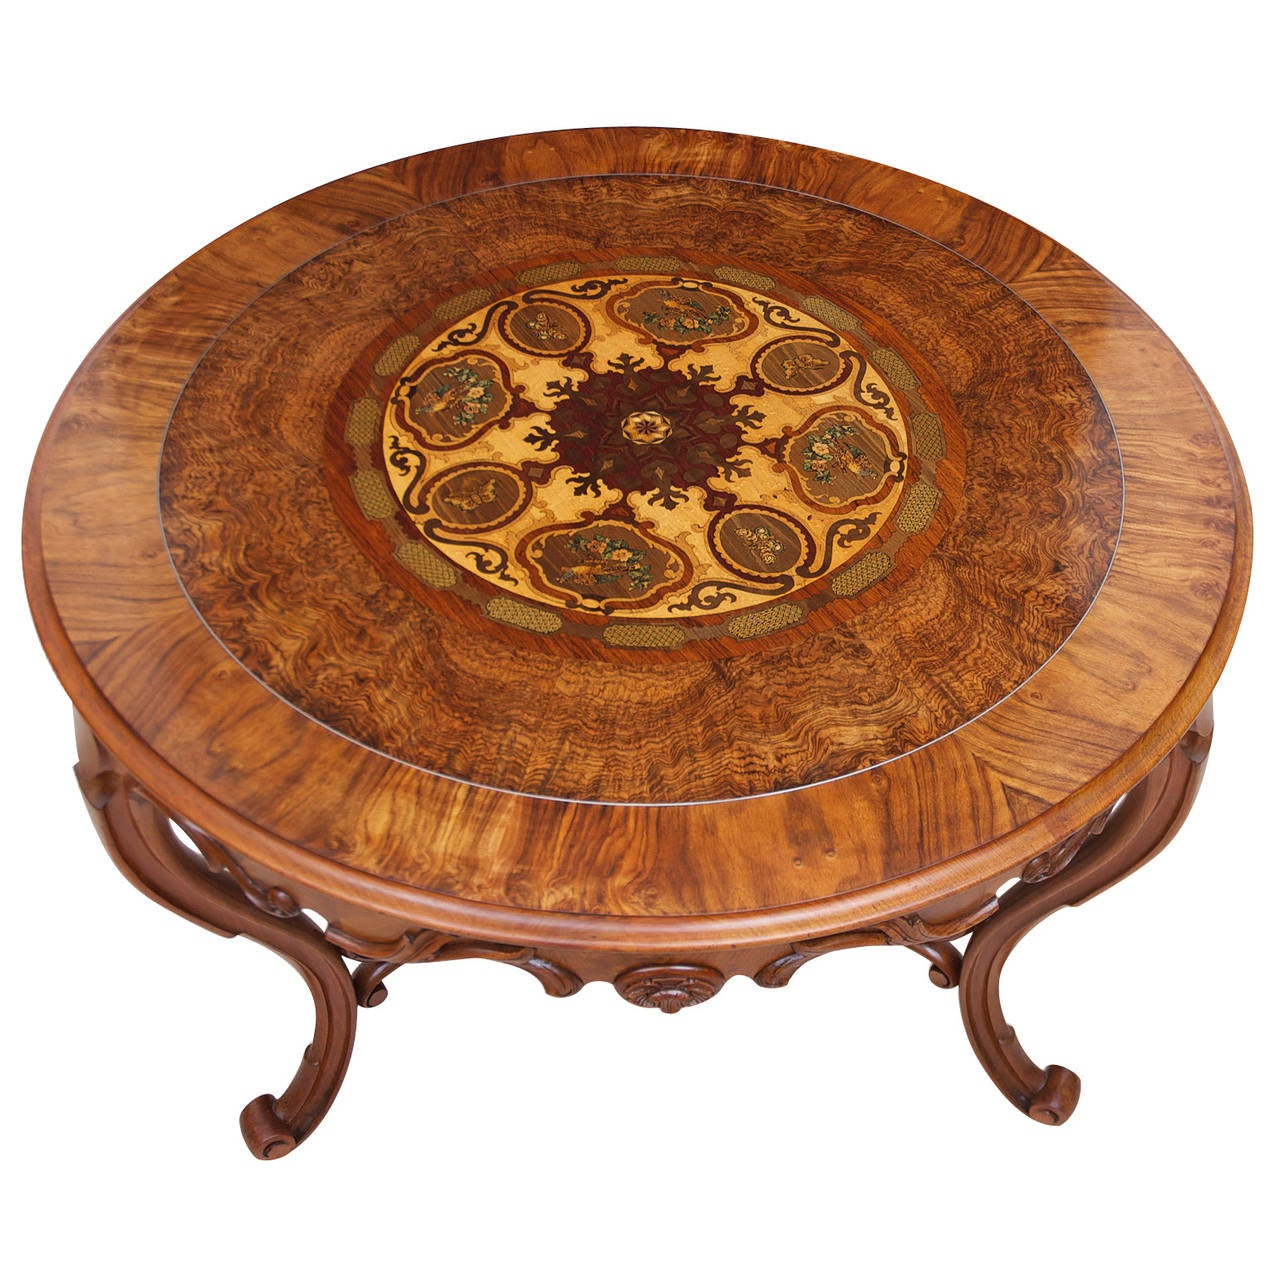 19th Century Italian Center Table with Mosaic Marquetry on Round Top 2